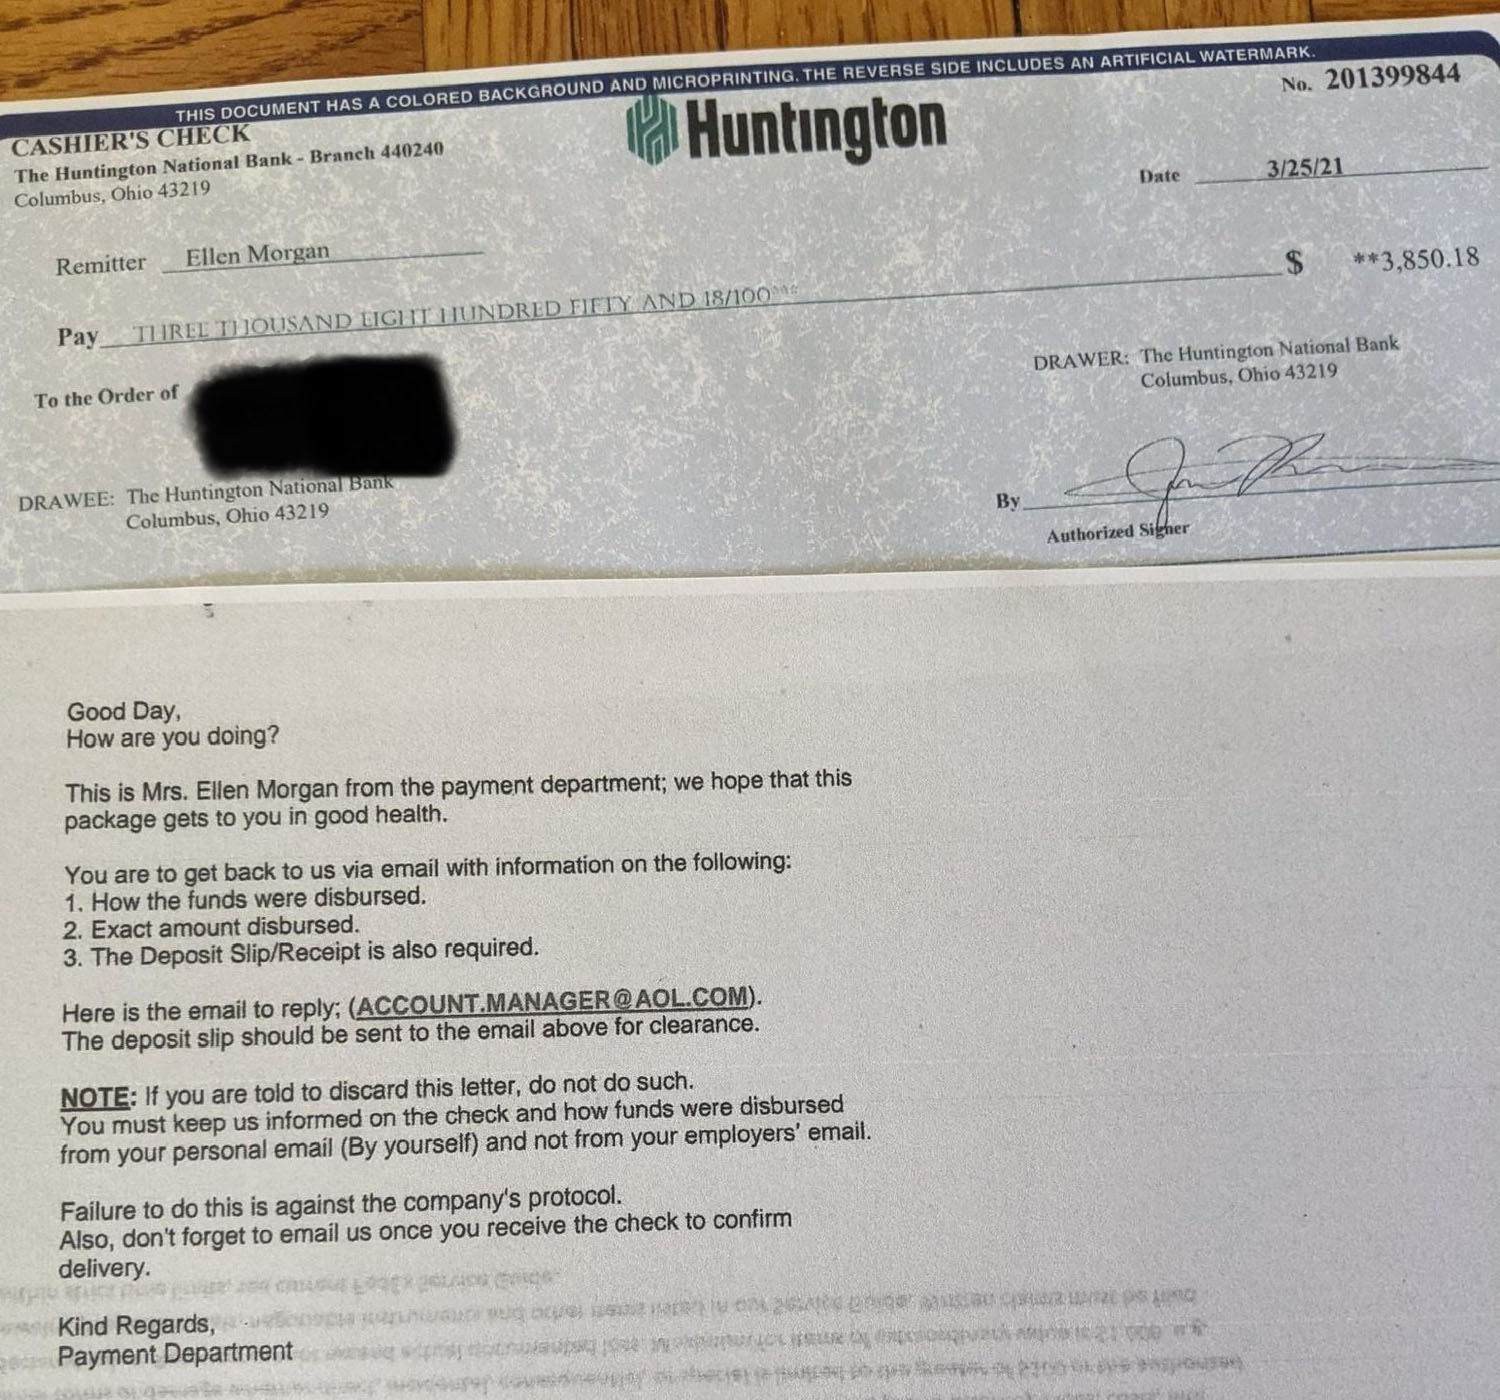 The check looks real, but it's fake